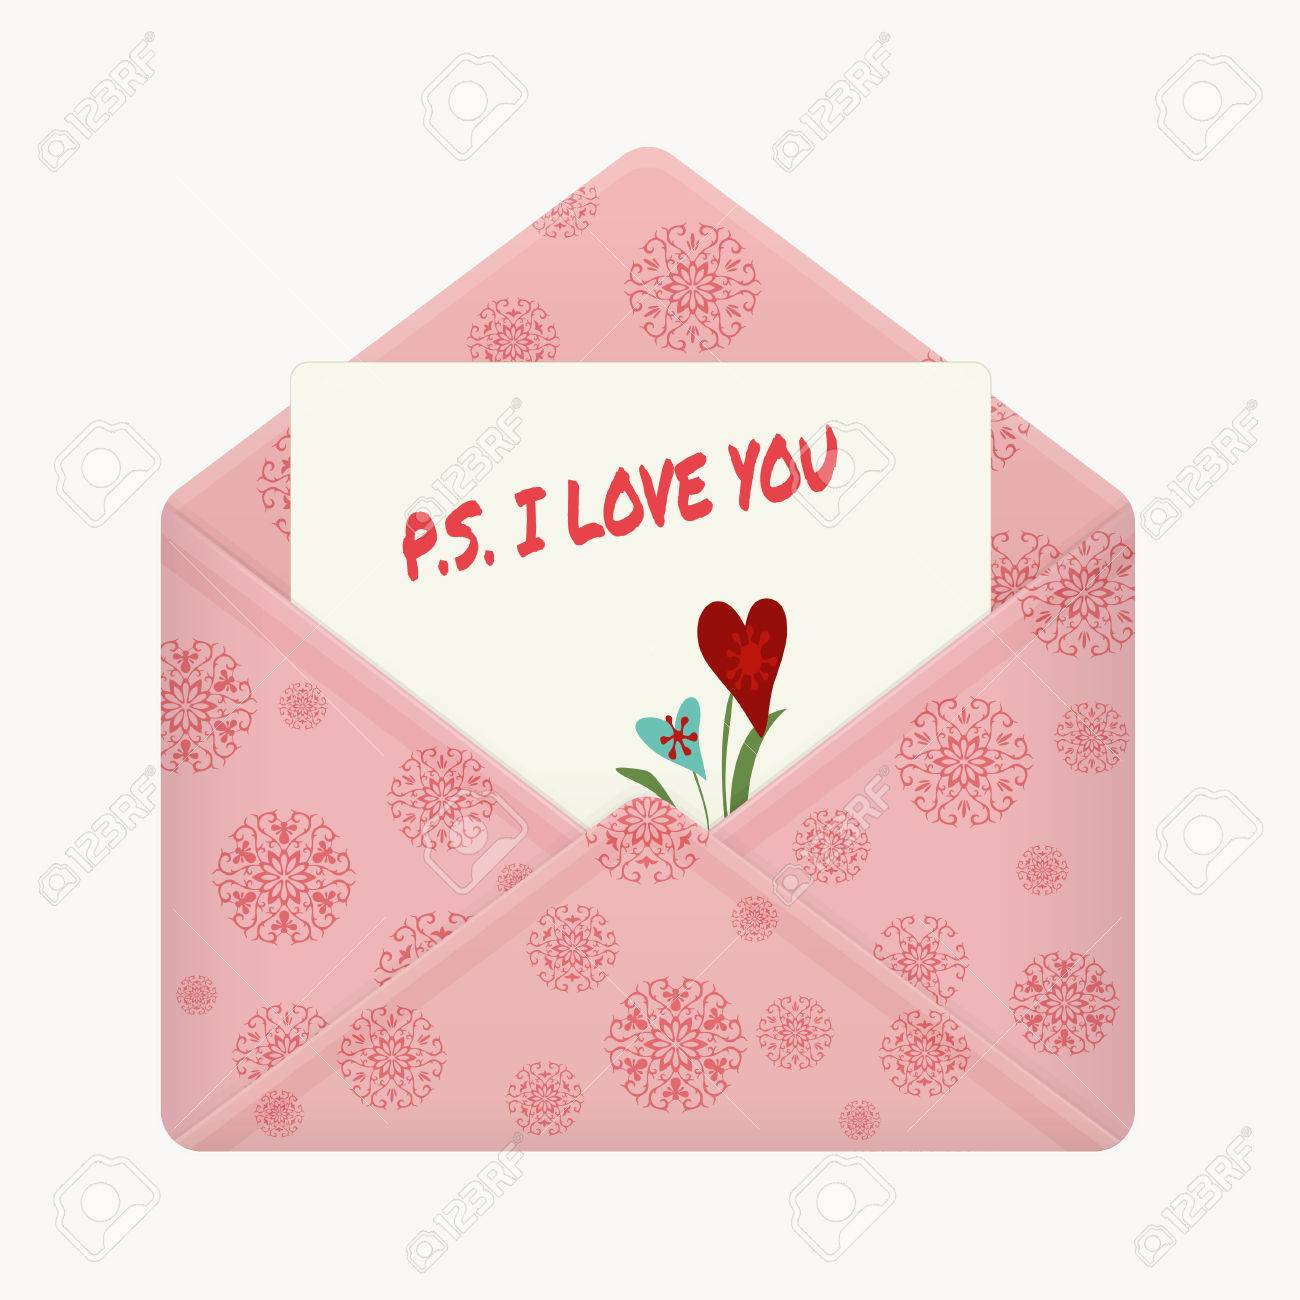 Letter In Open Colorful Envelope Postcard With A Message PS